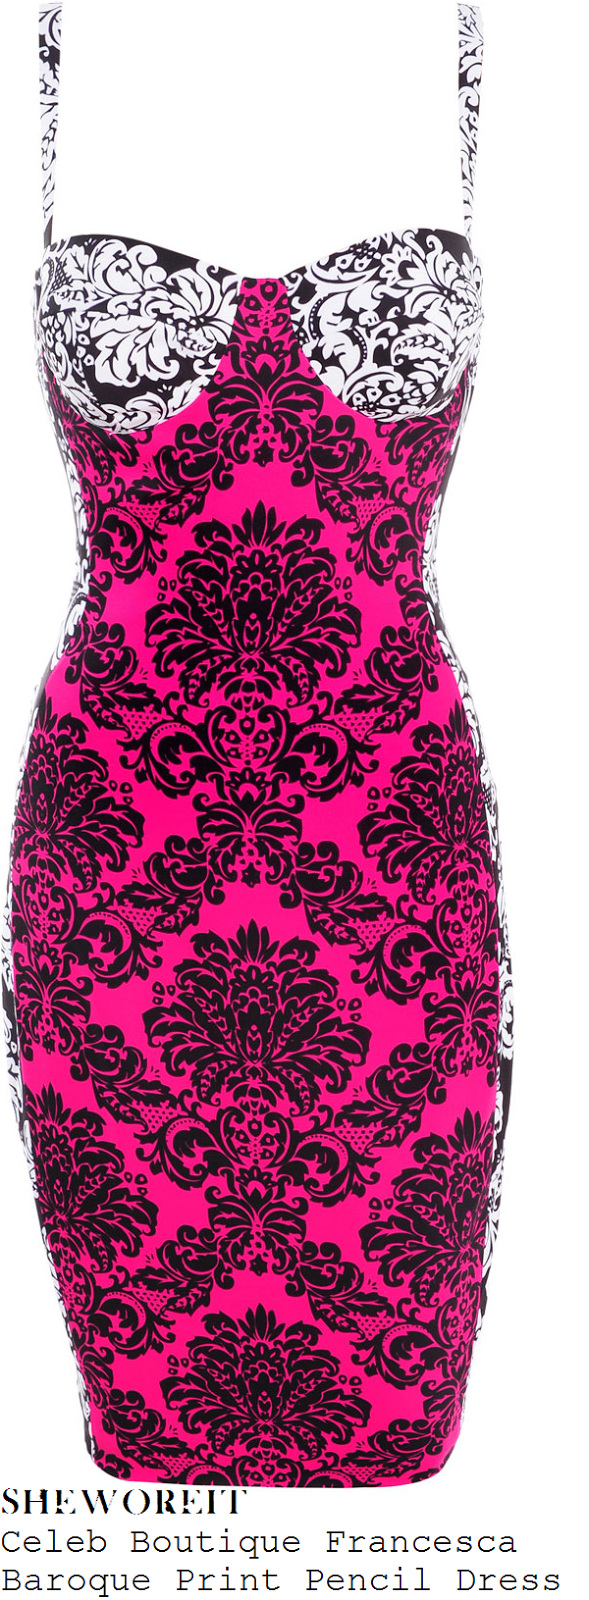 vicky-pattison-bright-pink-and-white-black-baroque-sleeveless-bodycon-pencil-dress